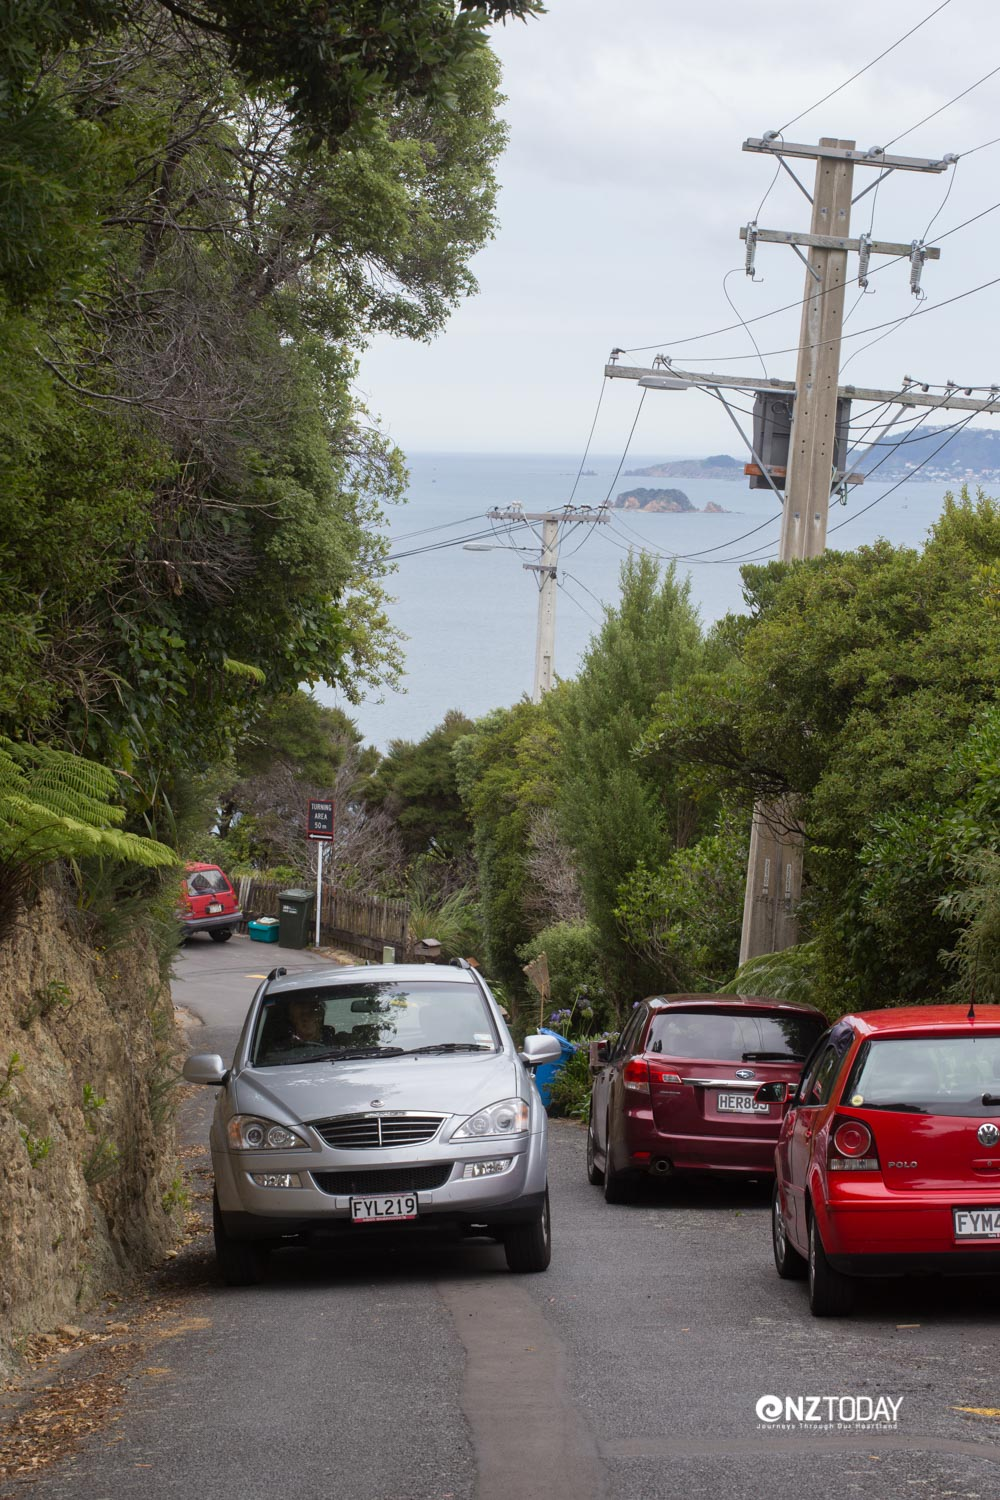 Typical Wellington road, narrow and winding